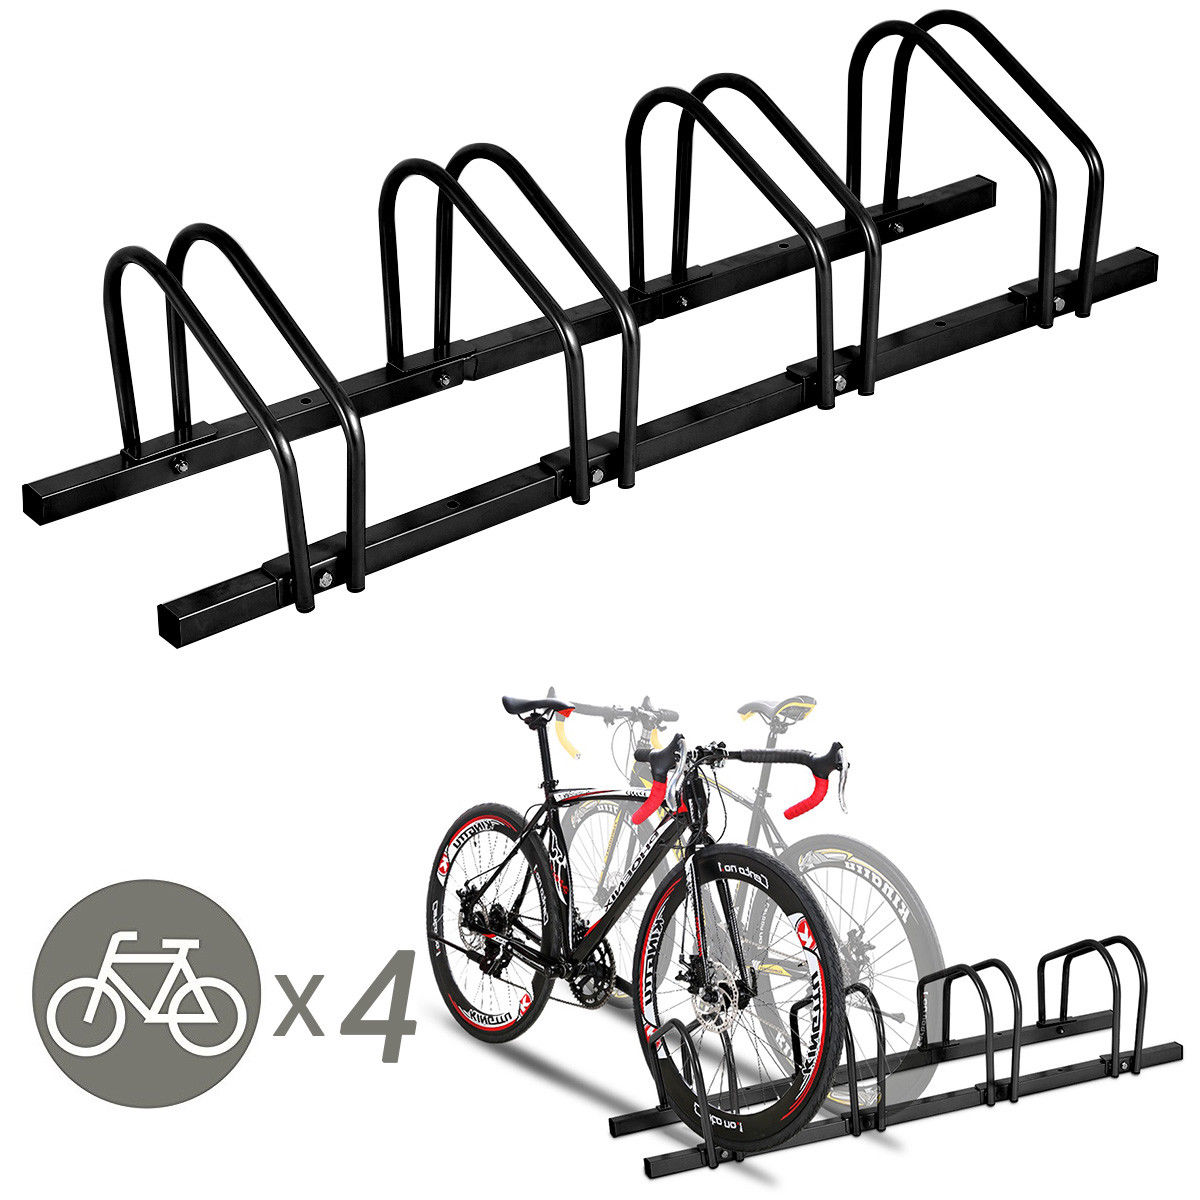 Gymax 4 Bike Bicycle Stand Parking Garage Storage Cycling Rack Black - image 10 of 10